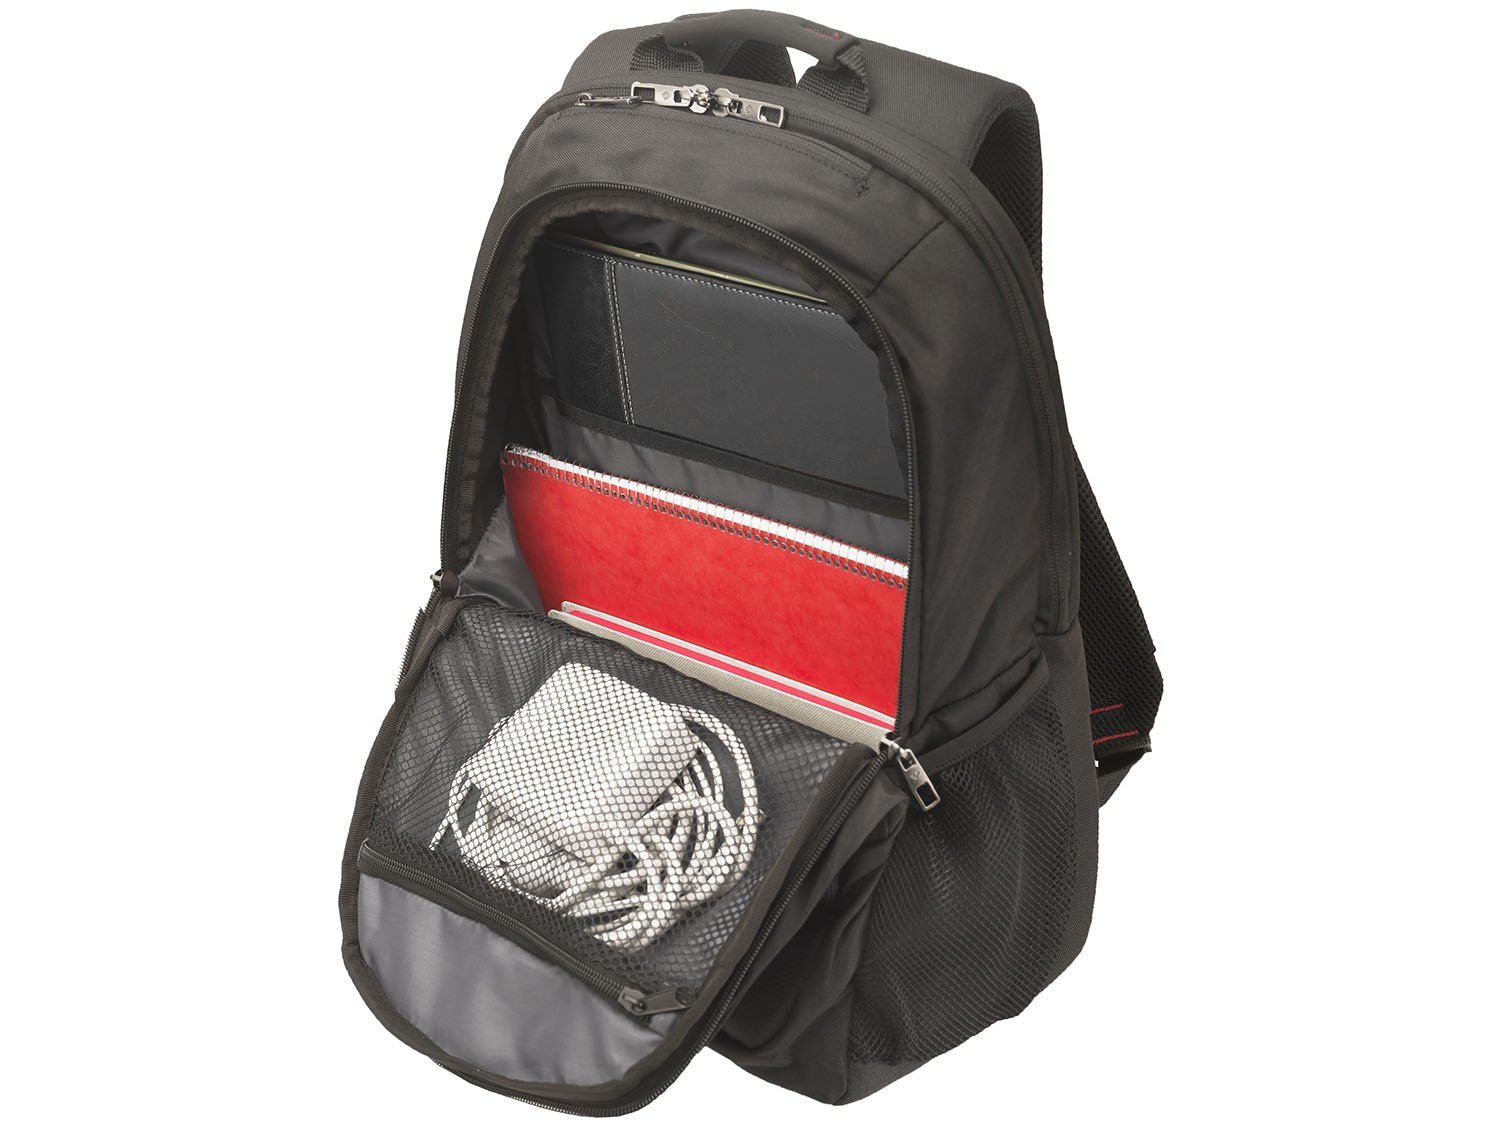 Mochila Samsonite para Notebook Guard IT Preto - 3